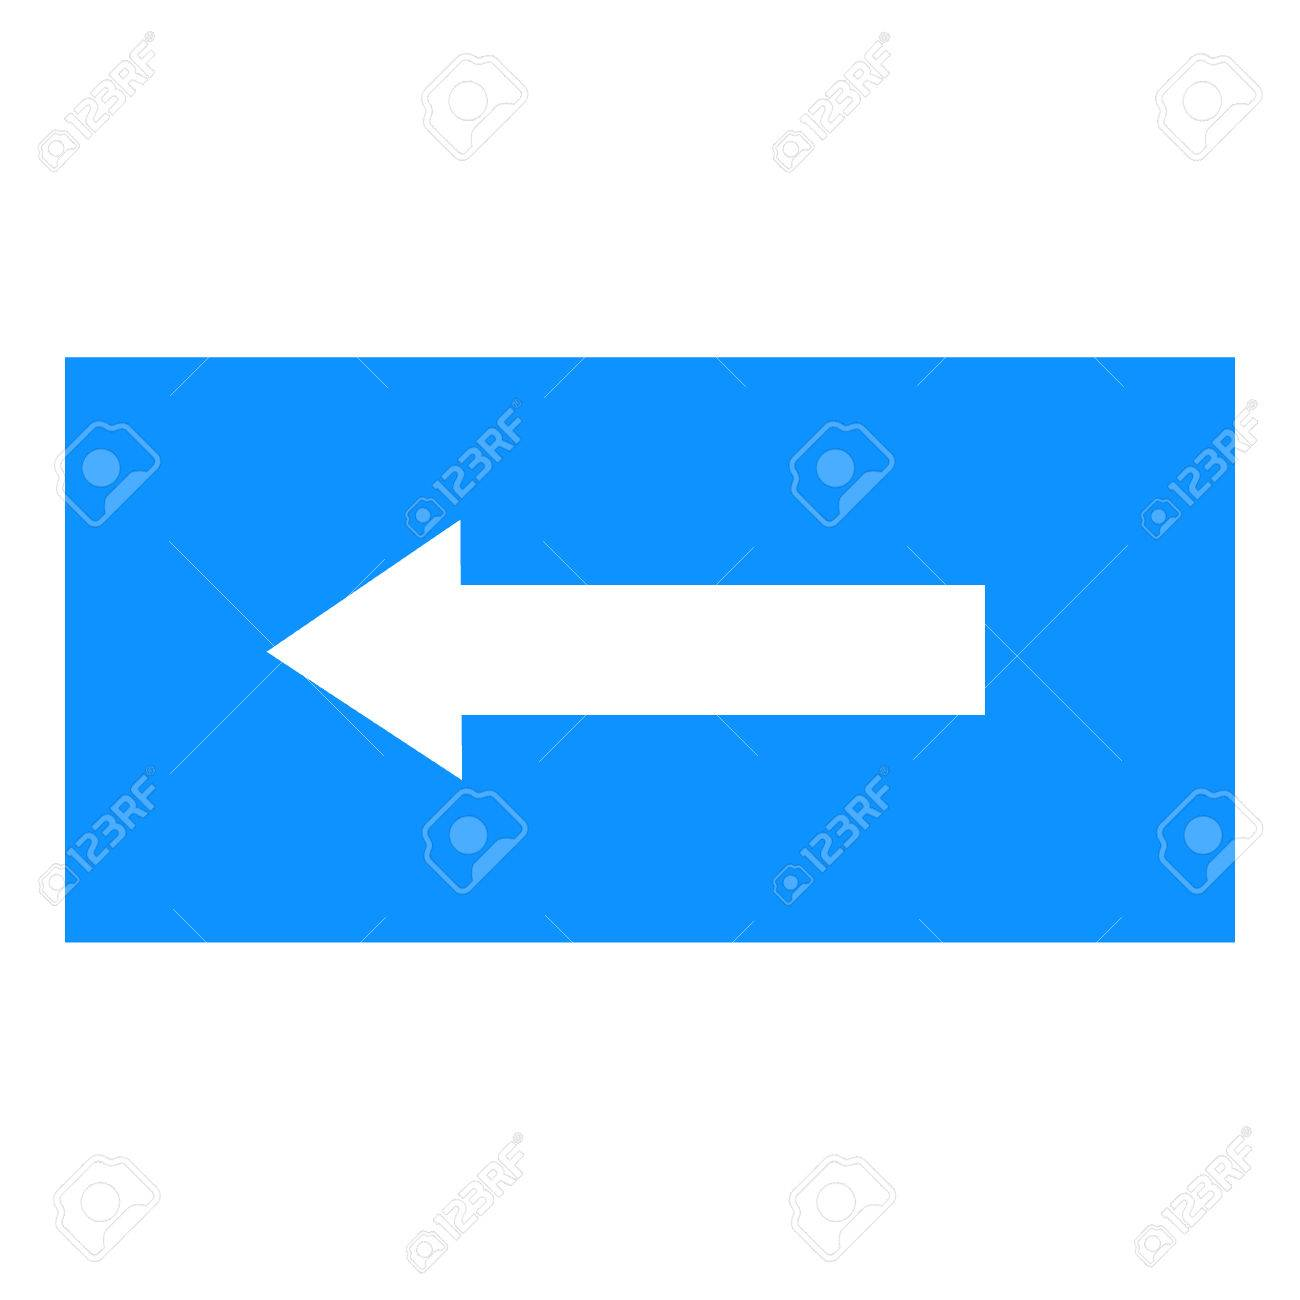 Arrow Sign White Icon In Blue Rectangle Isolated On White